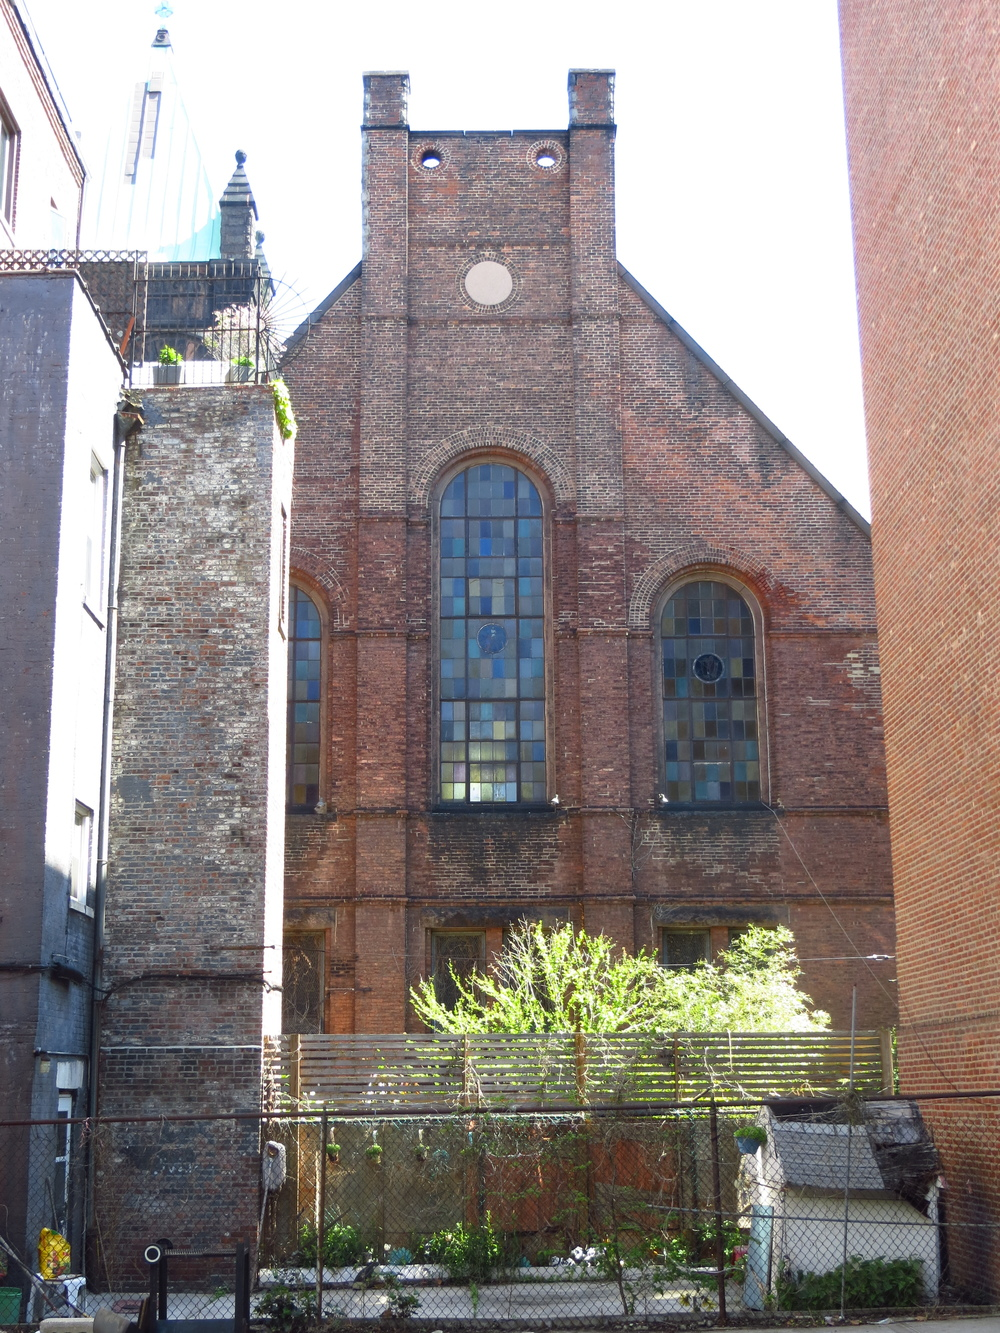 Back of a church